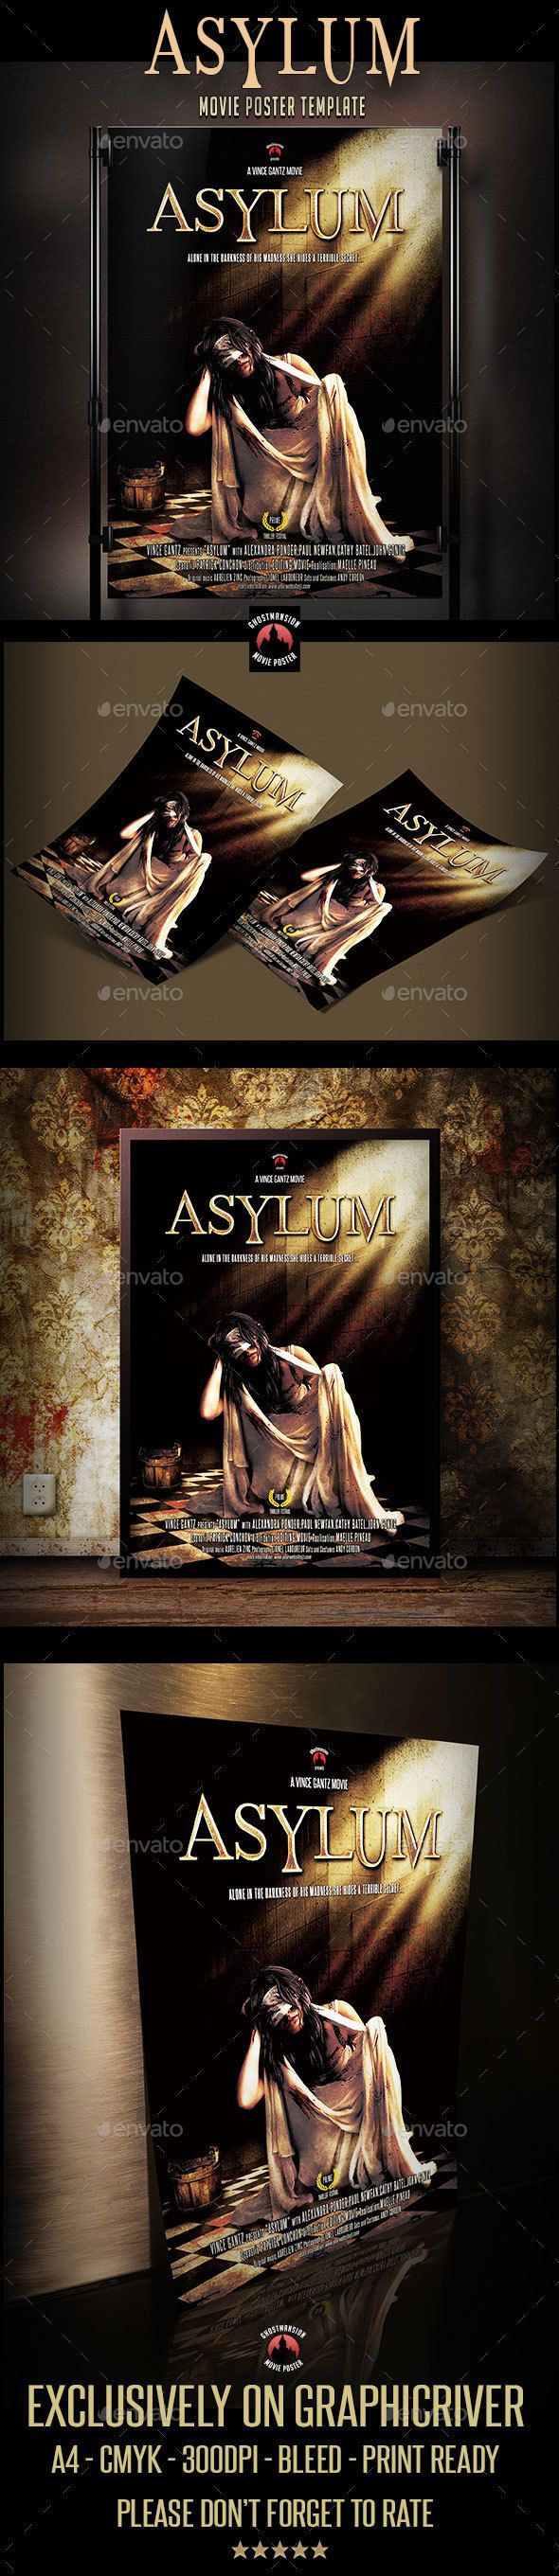 "Download Free              ""Asylum"" Movie Poster Template            #               actors #advertising #cinema #crazy #customizable #demon #devil #drama #event #evil flyer #fantastic flyer #film poster #halloween flyer #horror #madwoman #marketing #movie #poster #psd #scary movie #template #thriller"